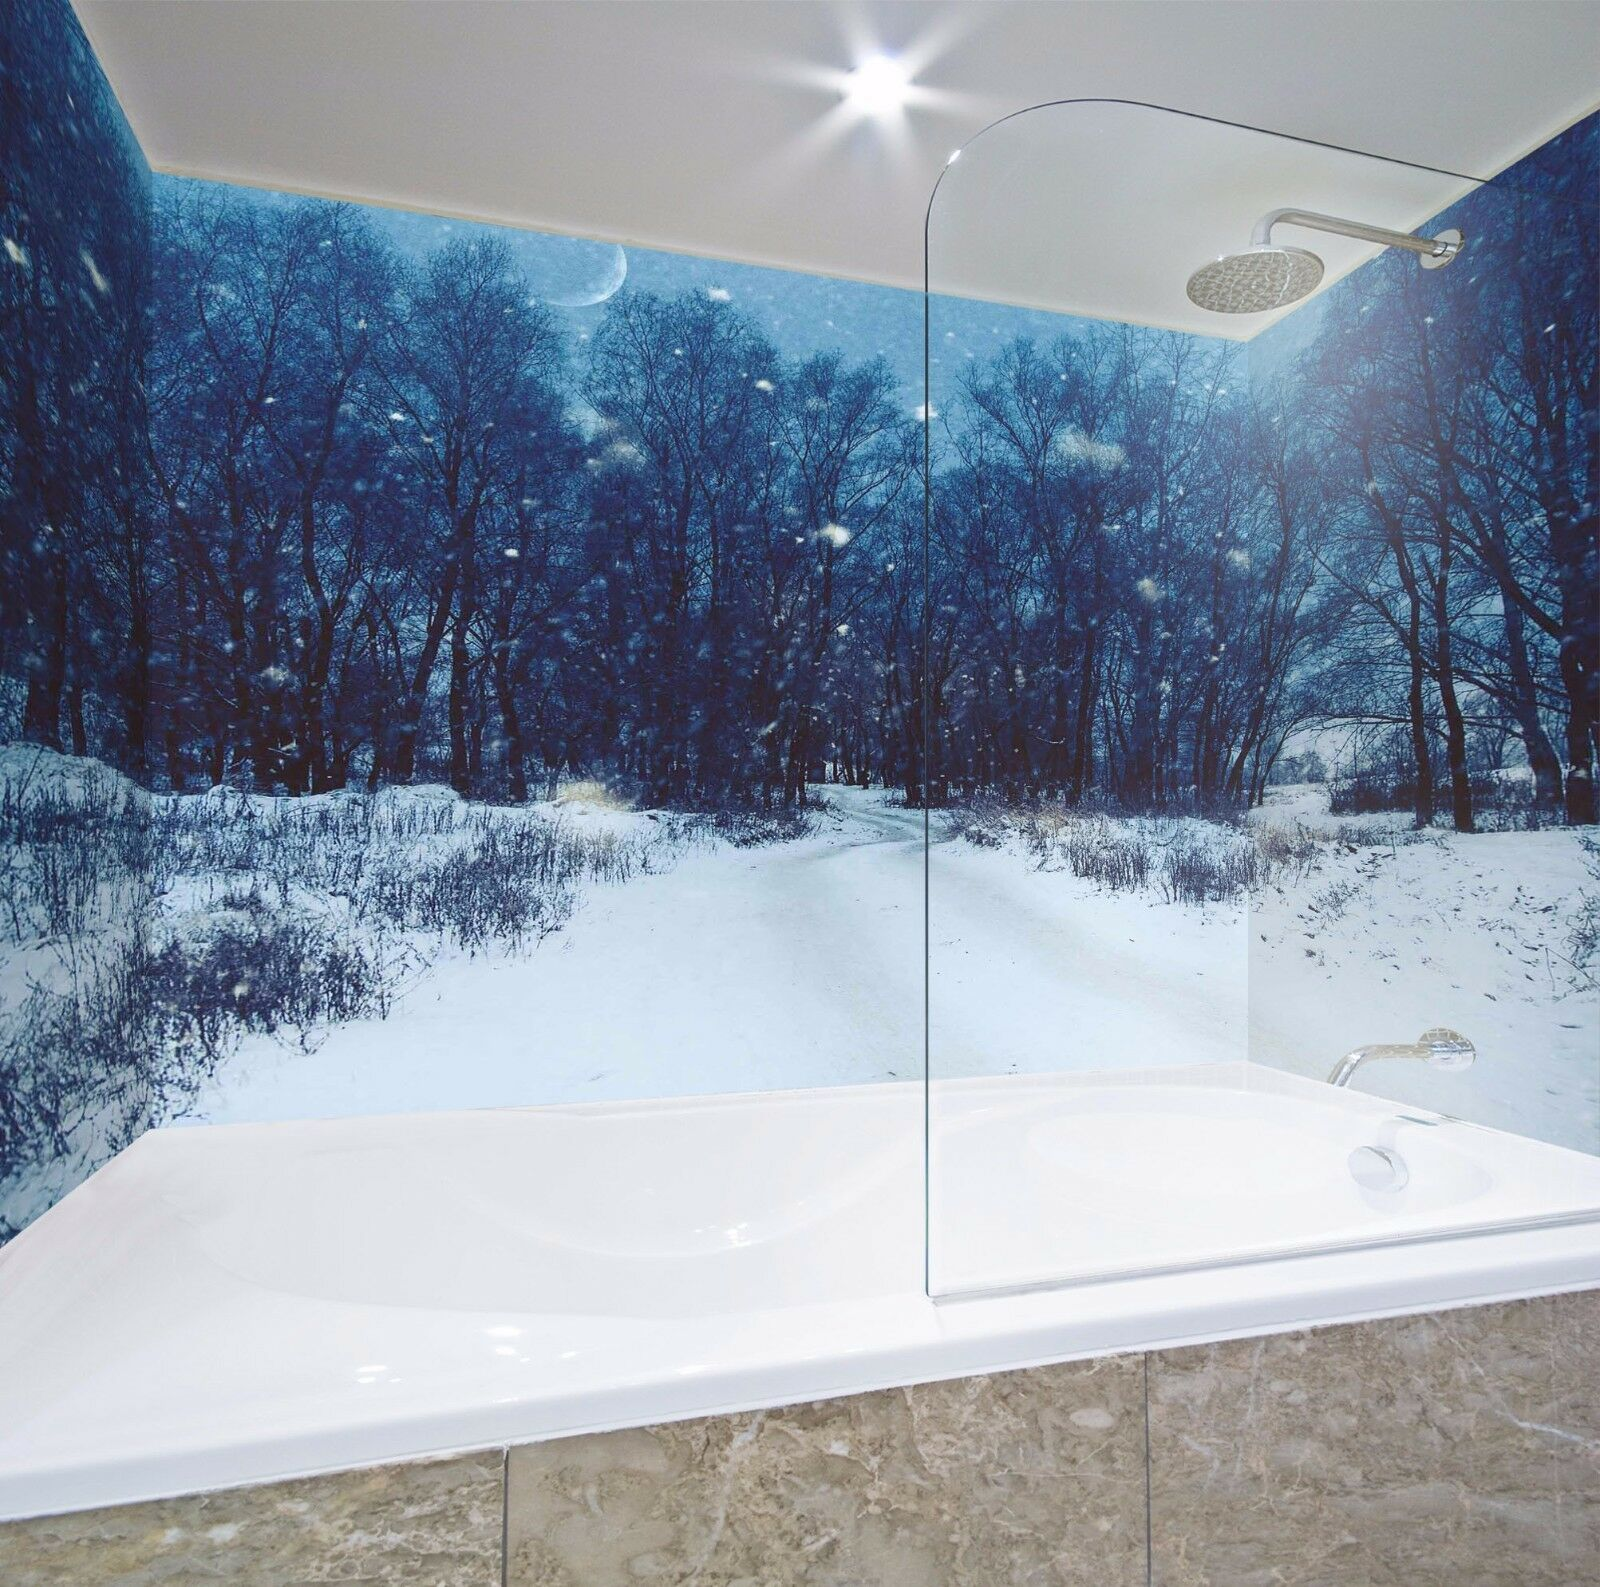 3D Night Snow Forest 53 WallPaper Bathroom Print Decal Wall Deco AJ WALLPAPER AU